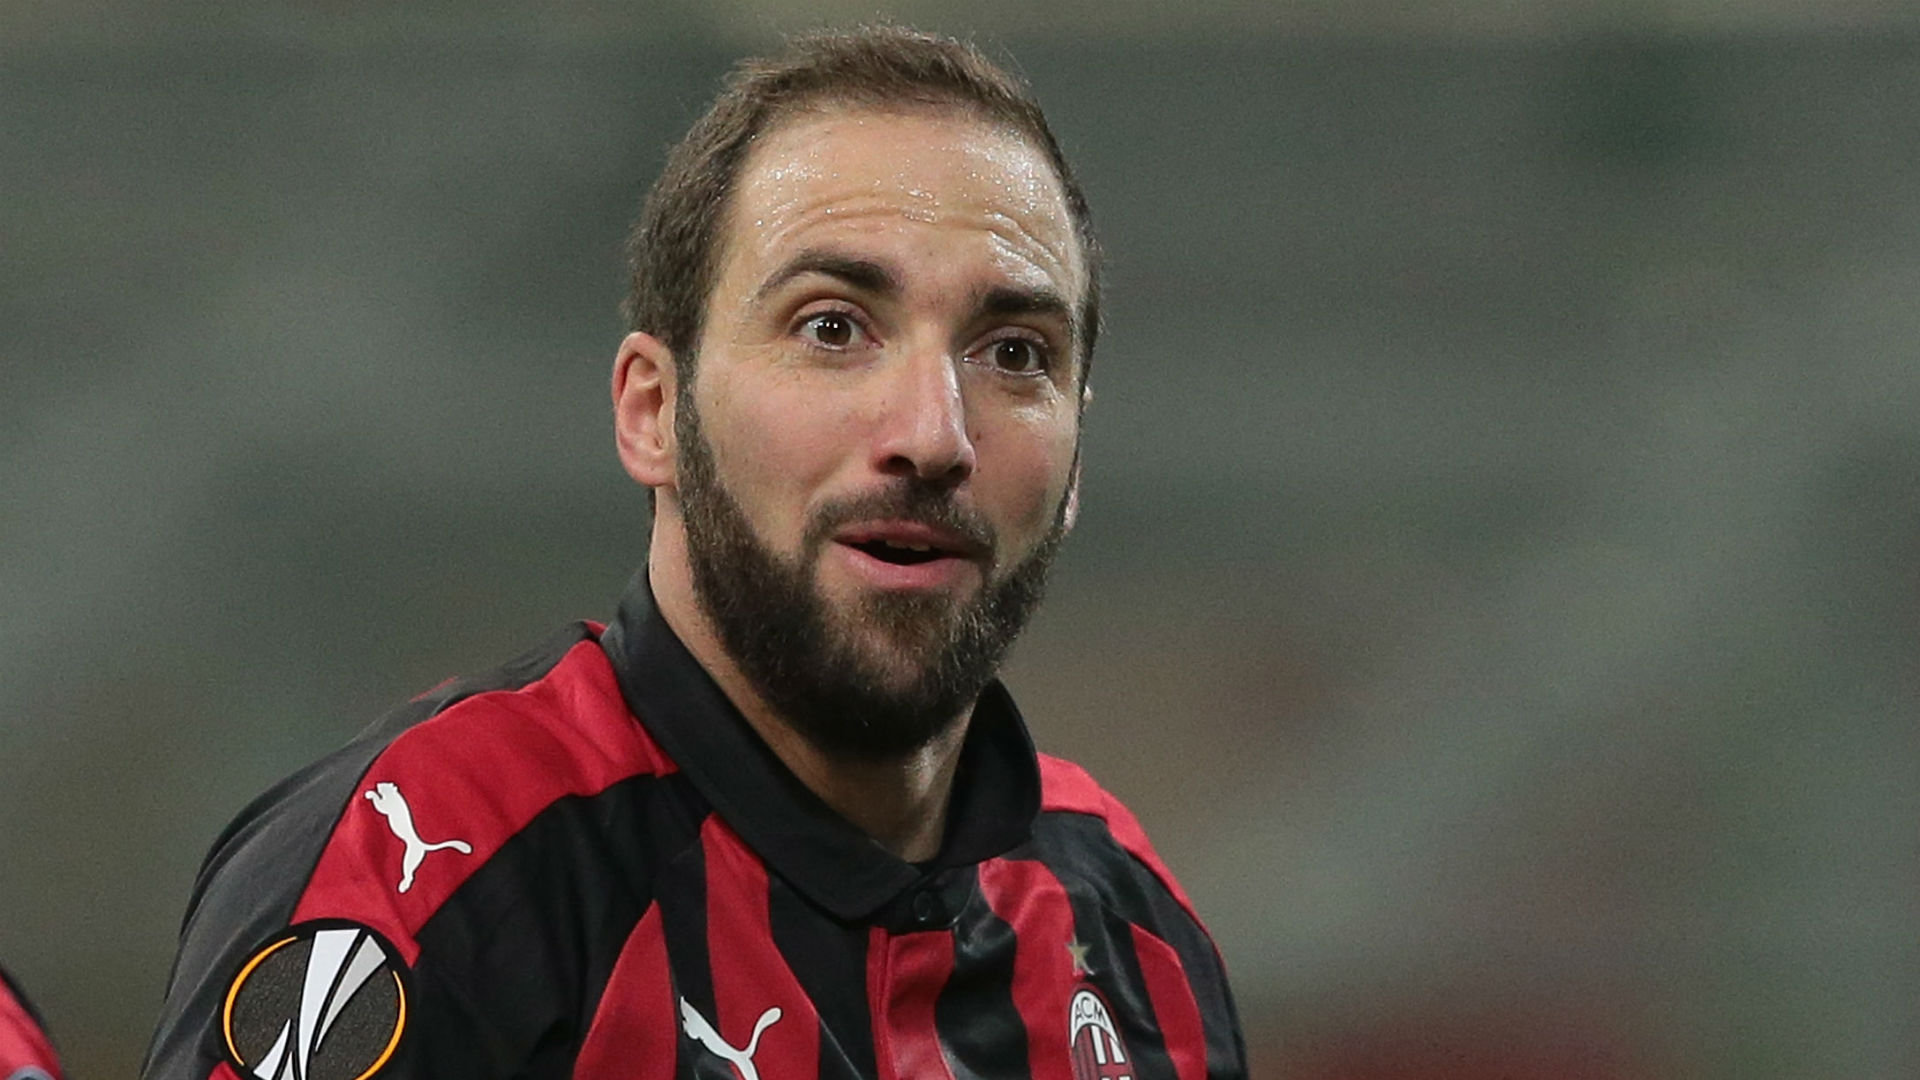 He is a champion – Gattuso unconcerned by Higuain goal drought